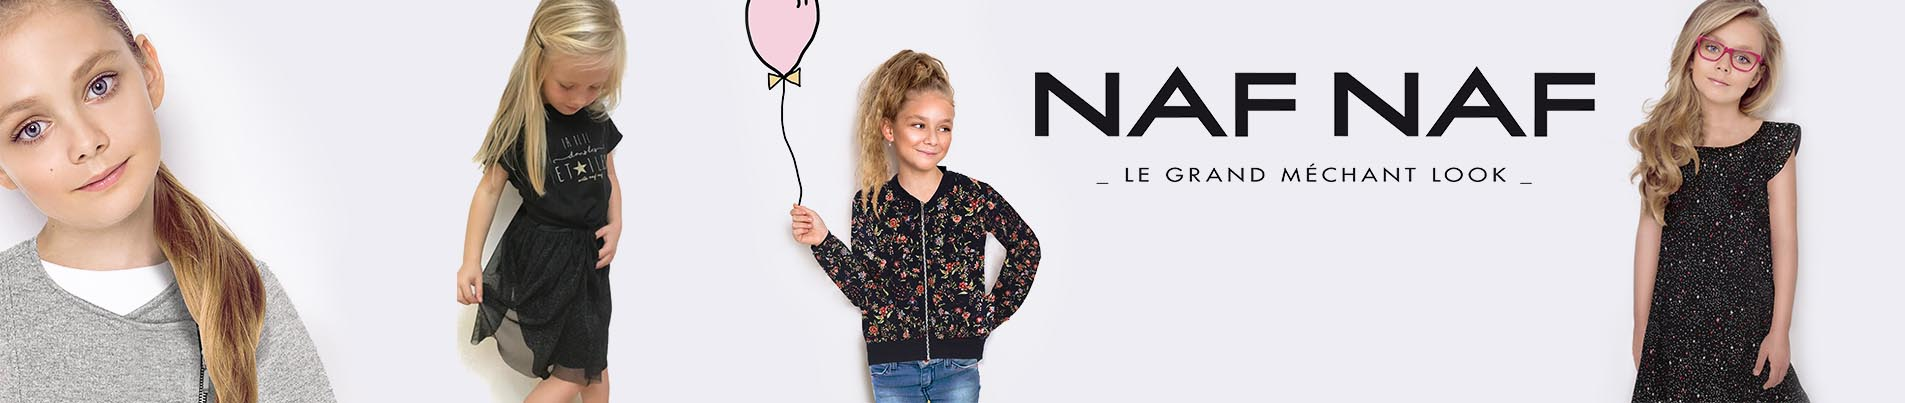 Naf Naf children brand clothes wholesale.